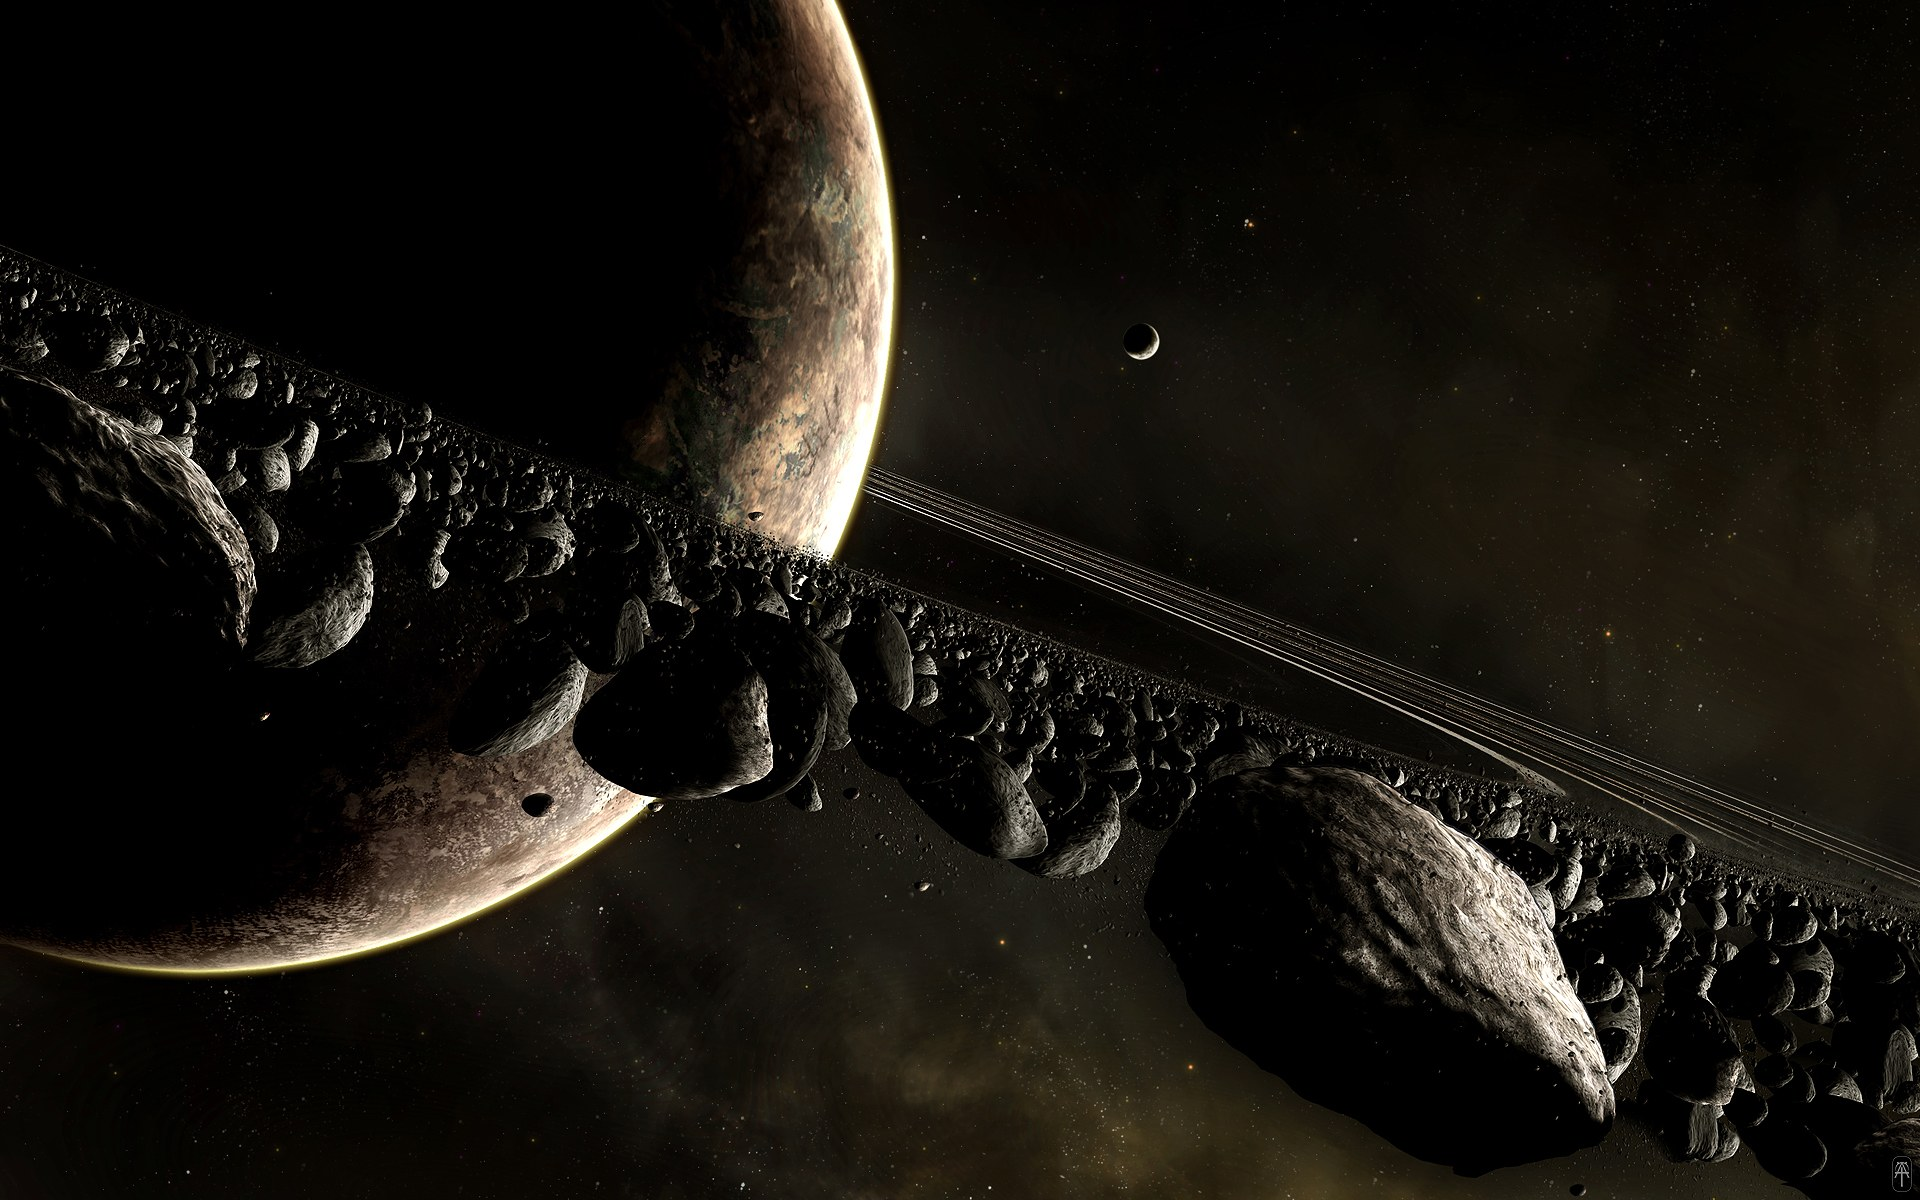 HD Digital art of Universe and  Universe Pictures With All Planets